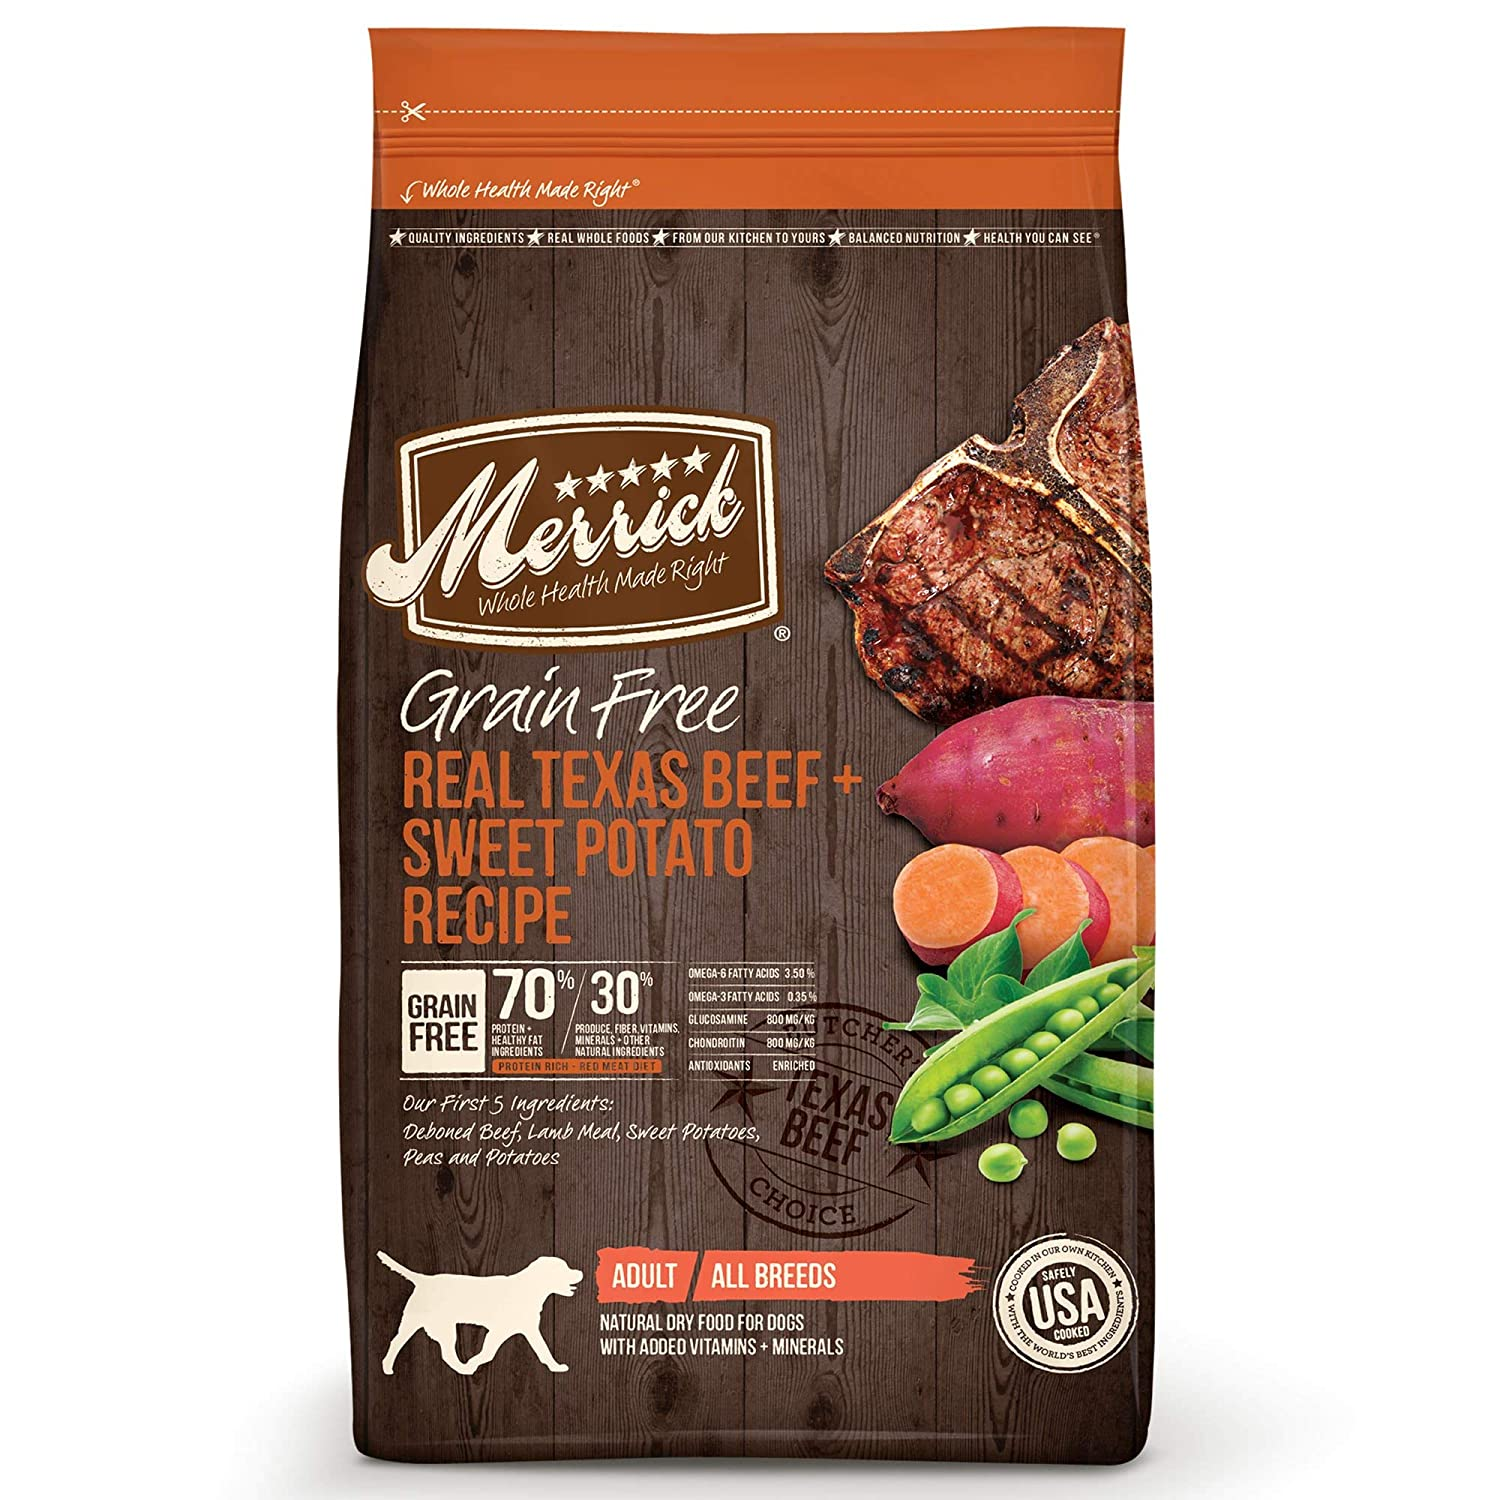 1.Merrick Grain-Free Texas Beef & Sweet Potato Recipe